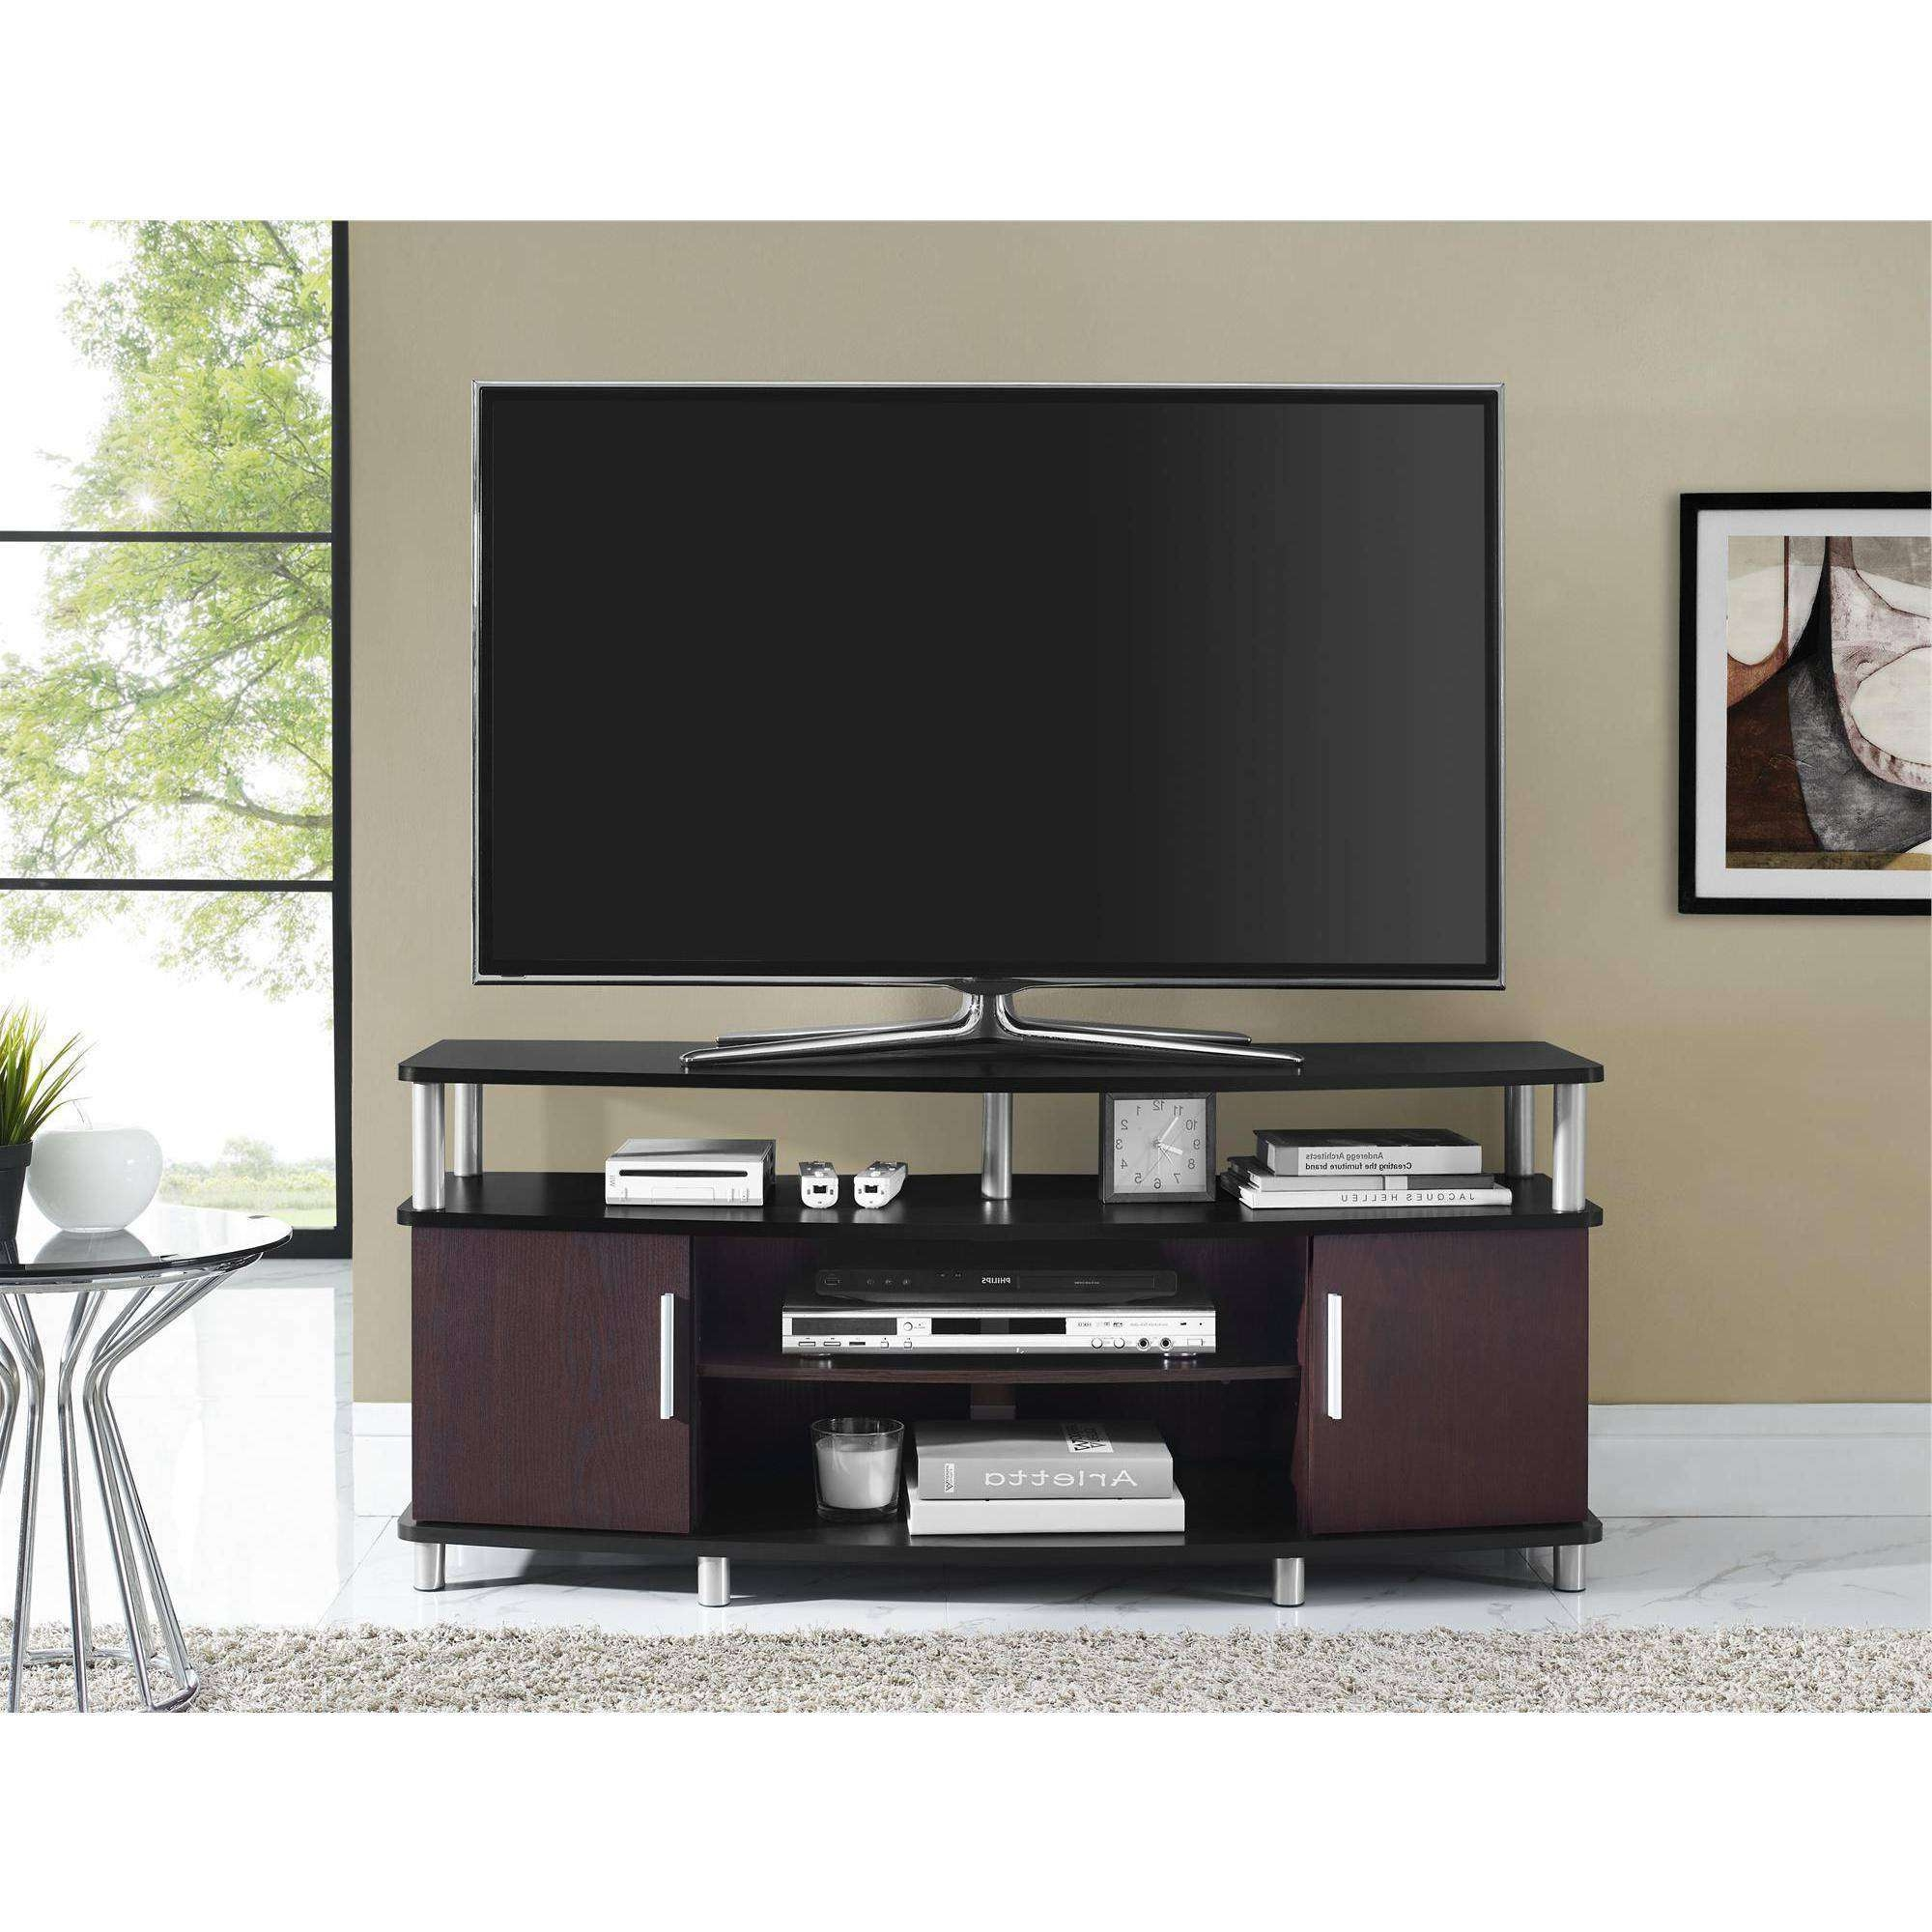 Tv Stand : Dreaded Corner Tv Stand Images Design Stands Stirring Intended For Corner Tv Stands For 50 Inch Tv (View 18 of 20)